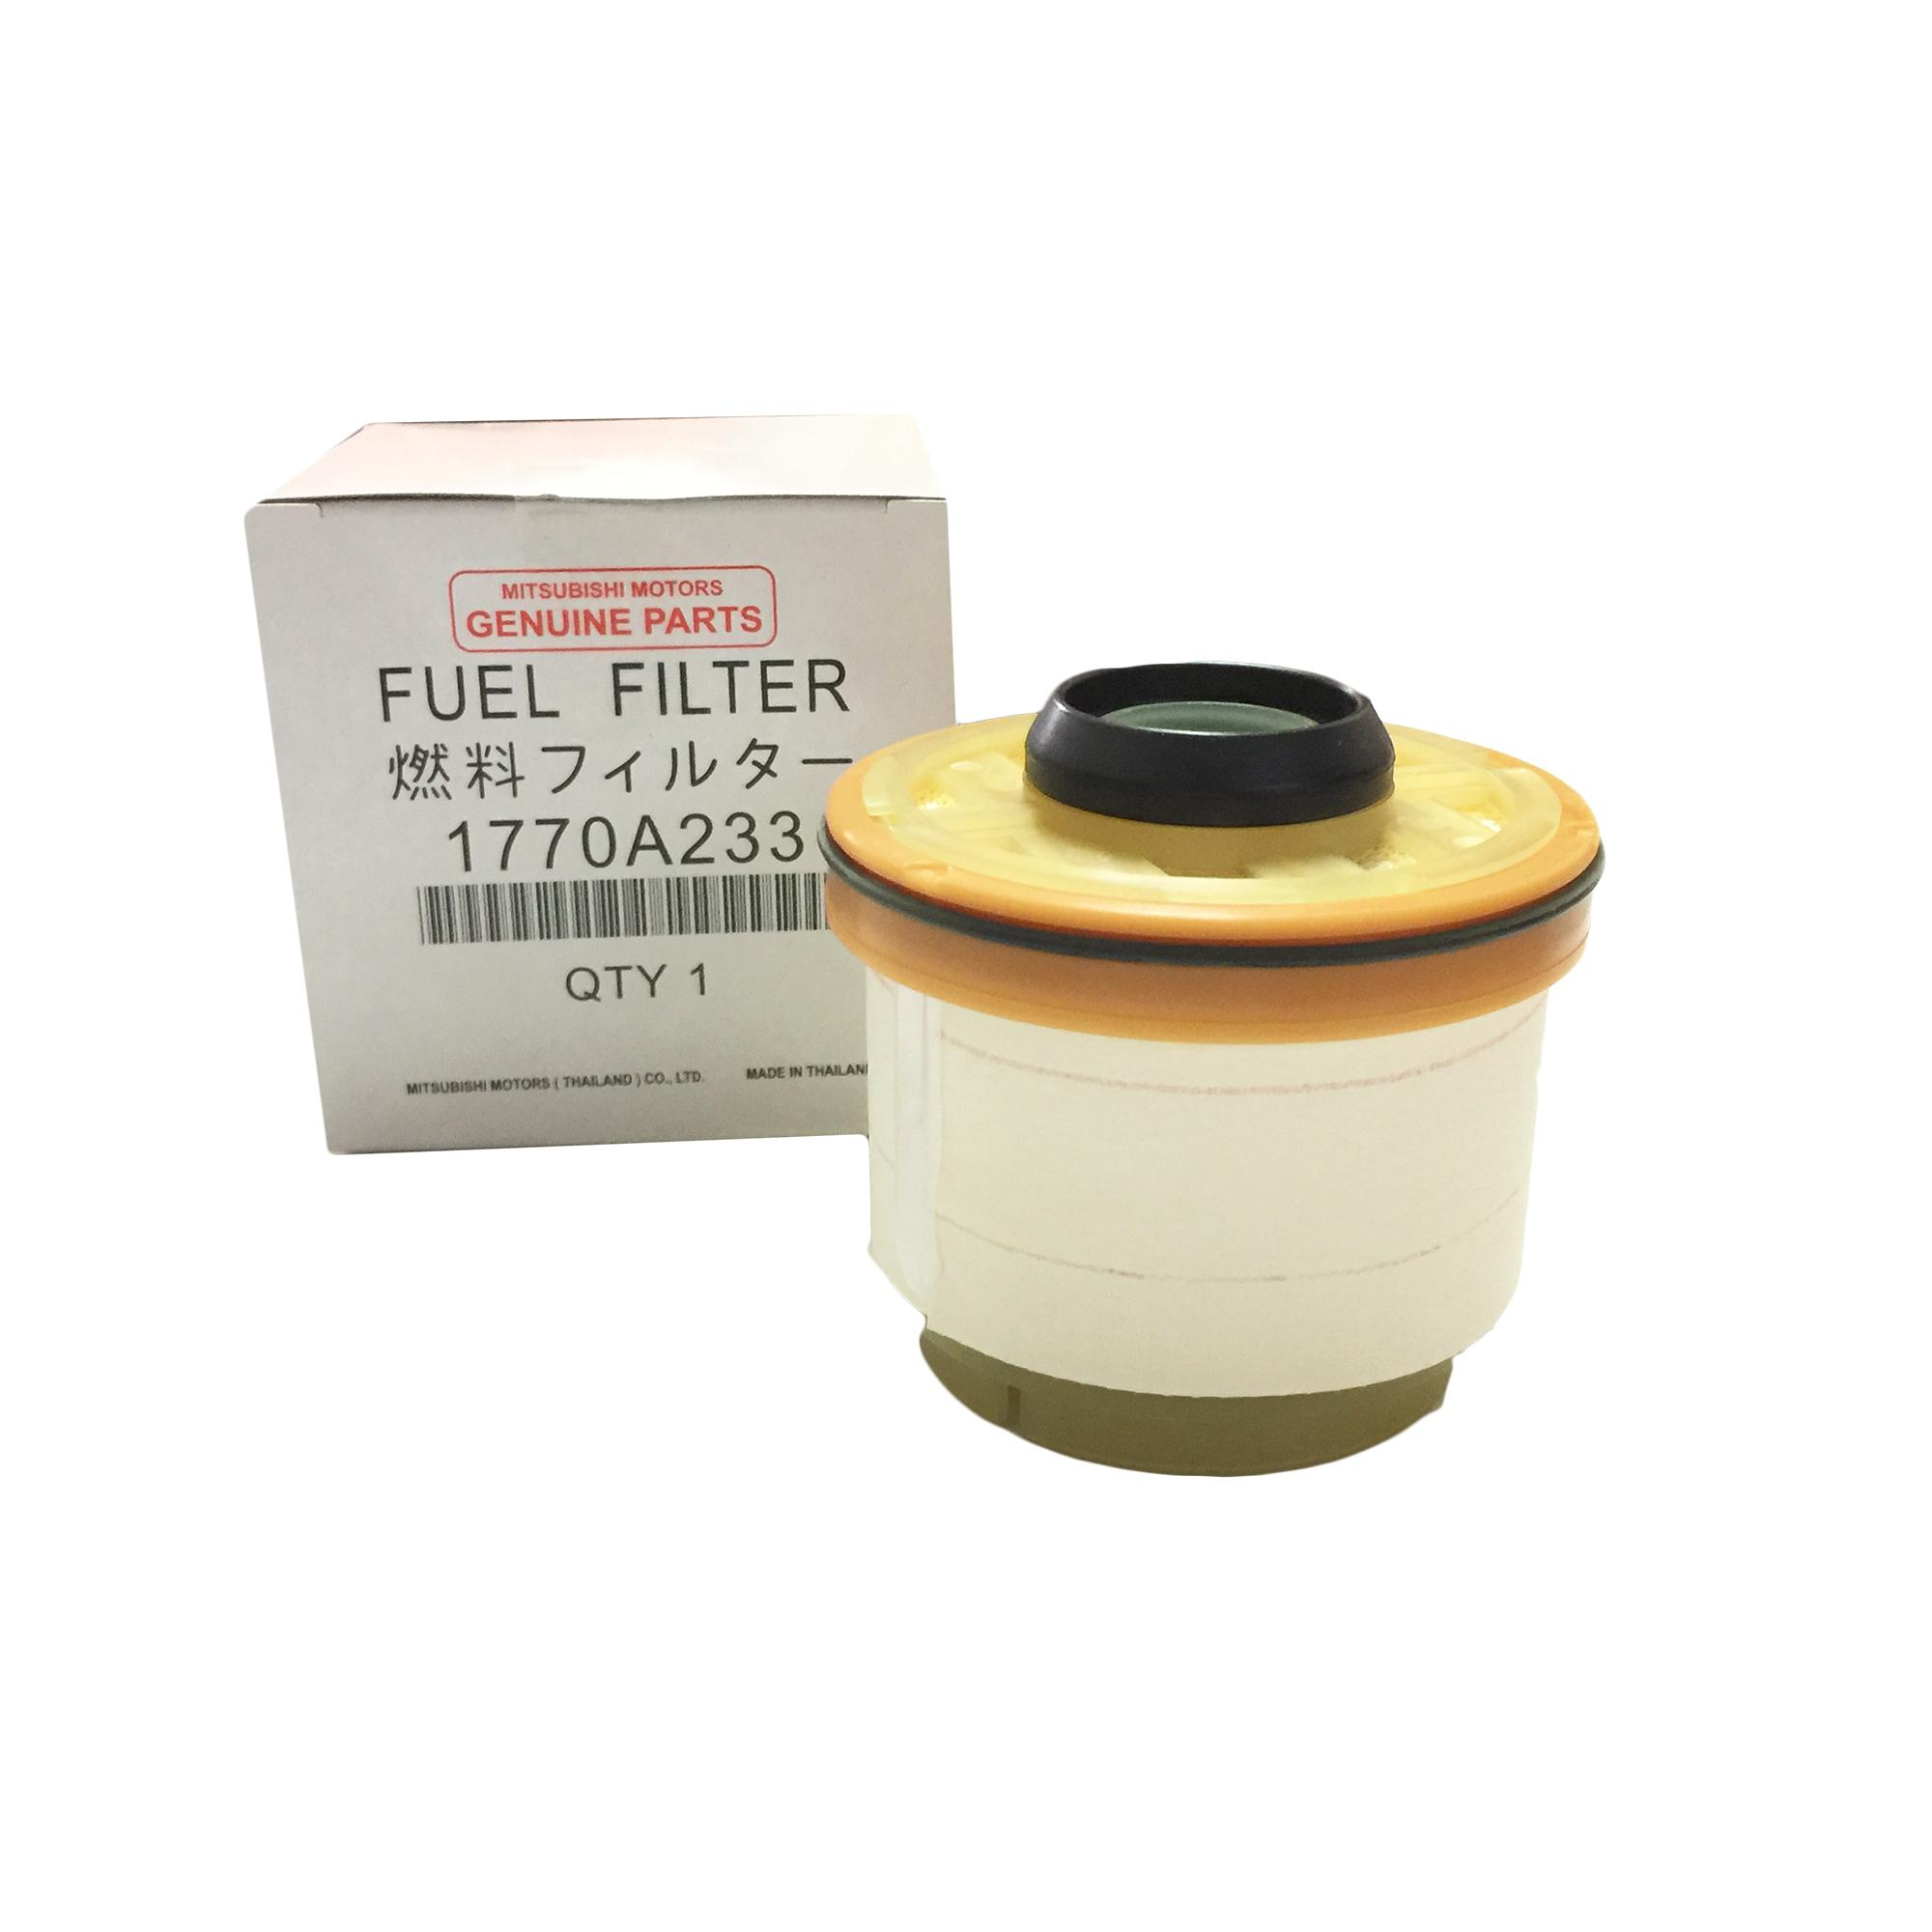 Fuel Filter For Sale Gas Online Brands Prices Reviews In 94 Chevy Truck Genuine Mitsubishi Auto Parts 1770a233 Montero 2013 2018